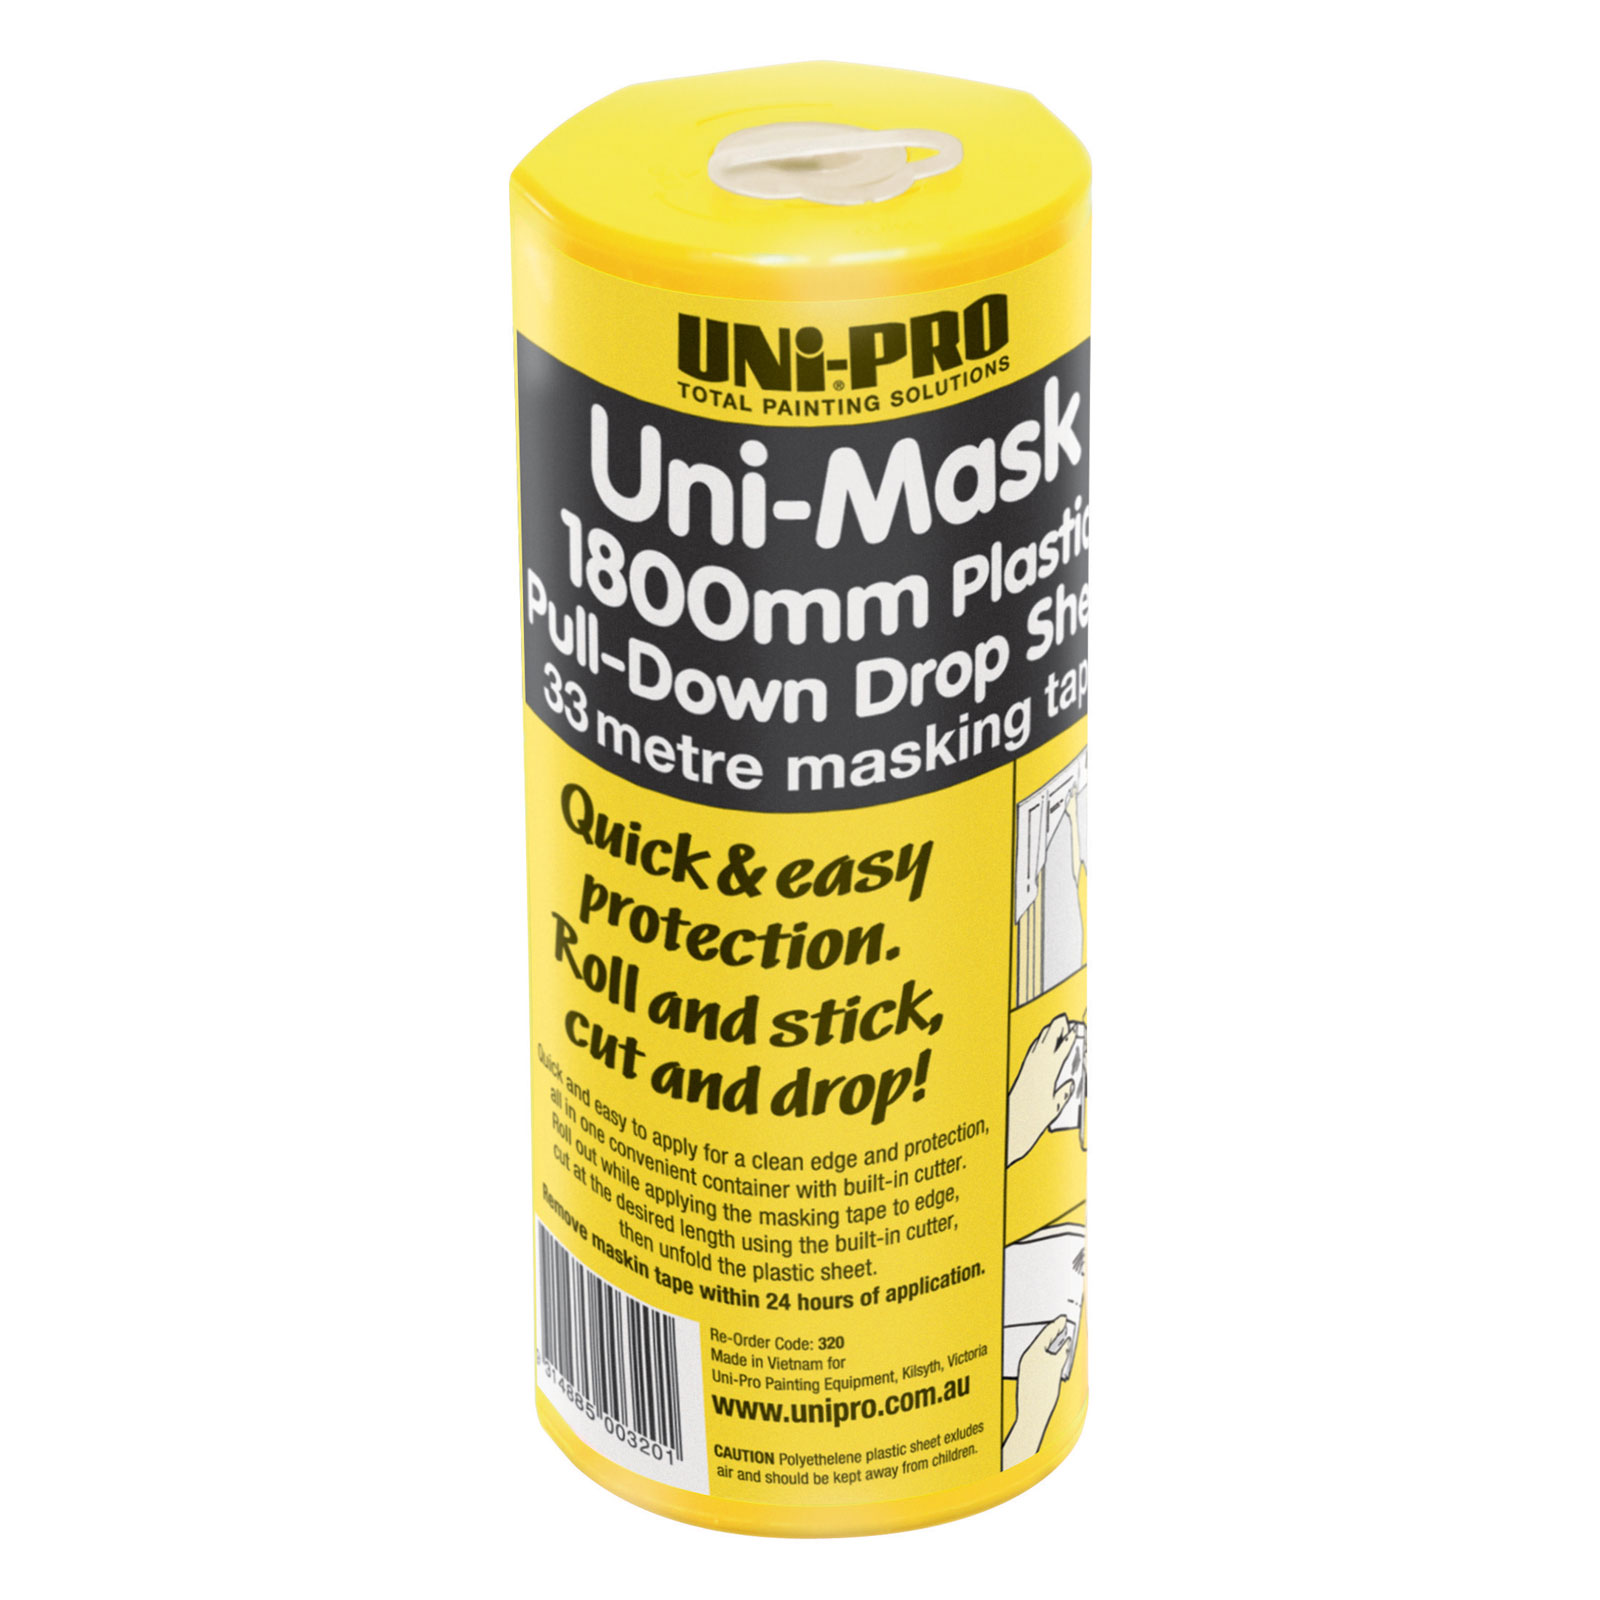 Uni-Mask Masking Tape & Pull-Down Plastic Drop Sheet